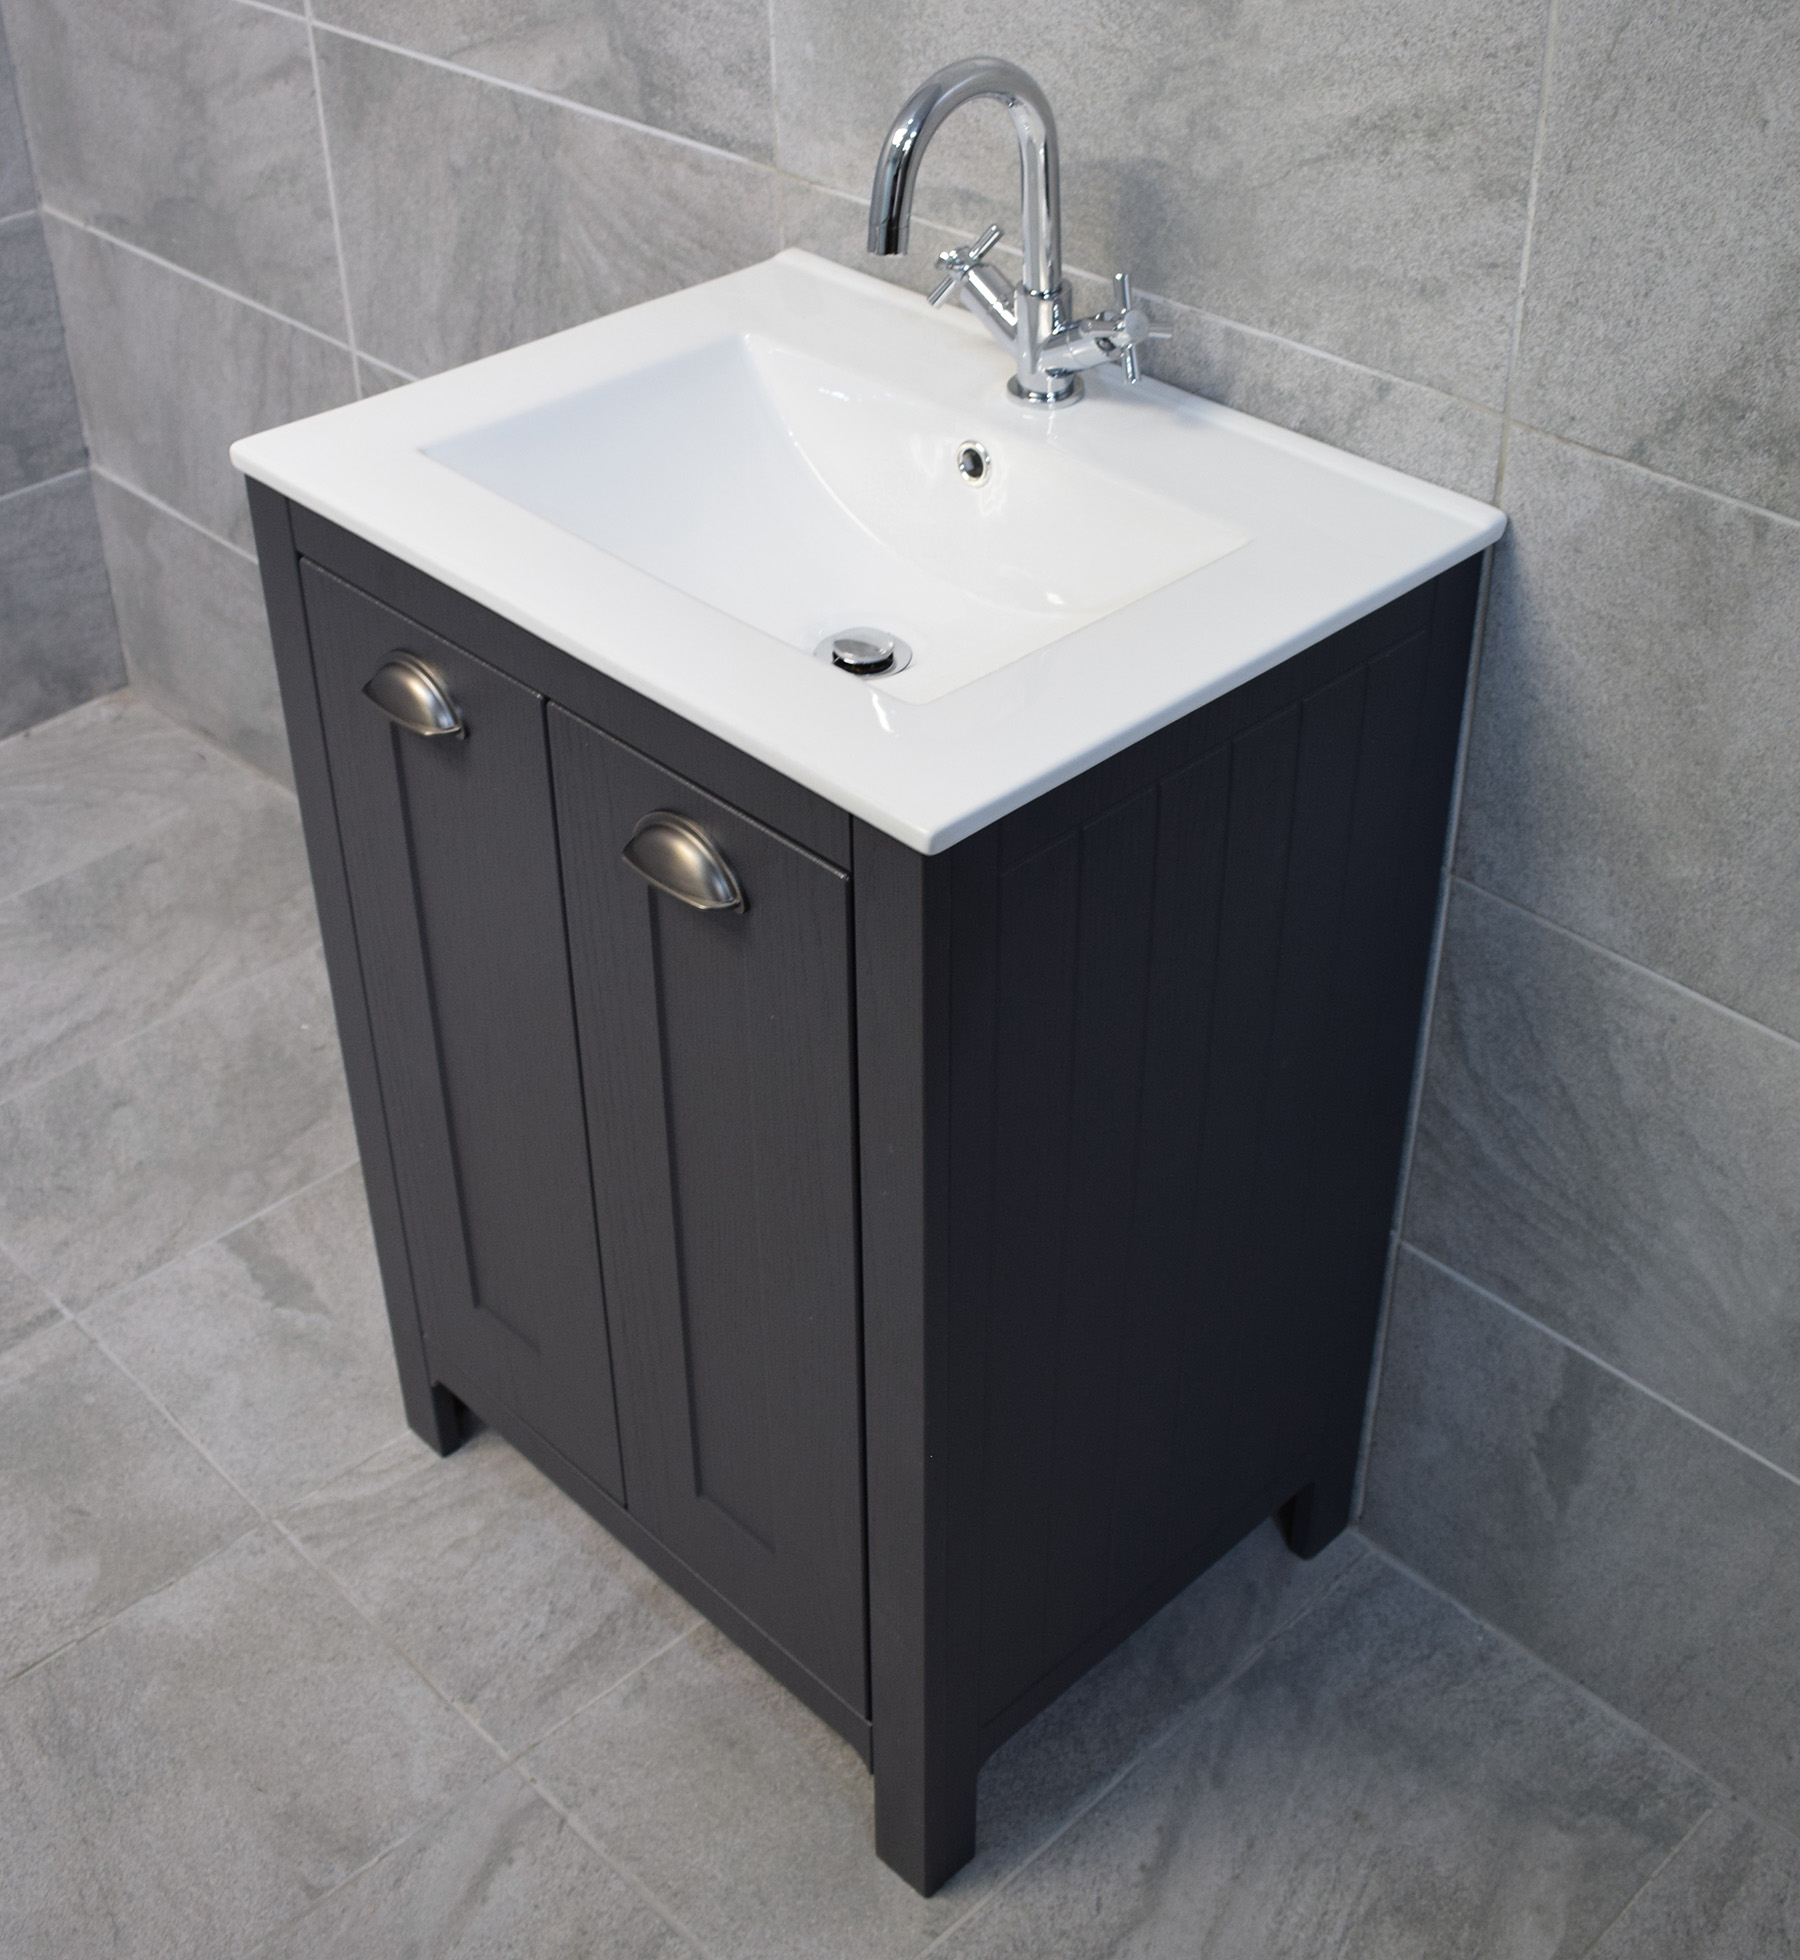 derby 600mm dark grey bathroom vanity sink basin unit furniture ebay rh ebay co uk Corner Bathroom Vanity Units Corner Bathroom Vanity Units